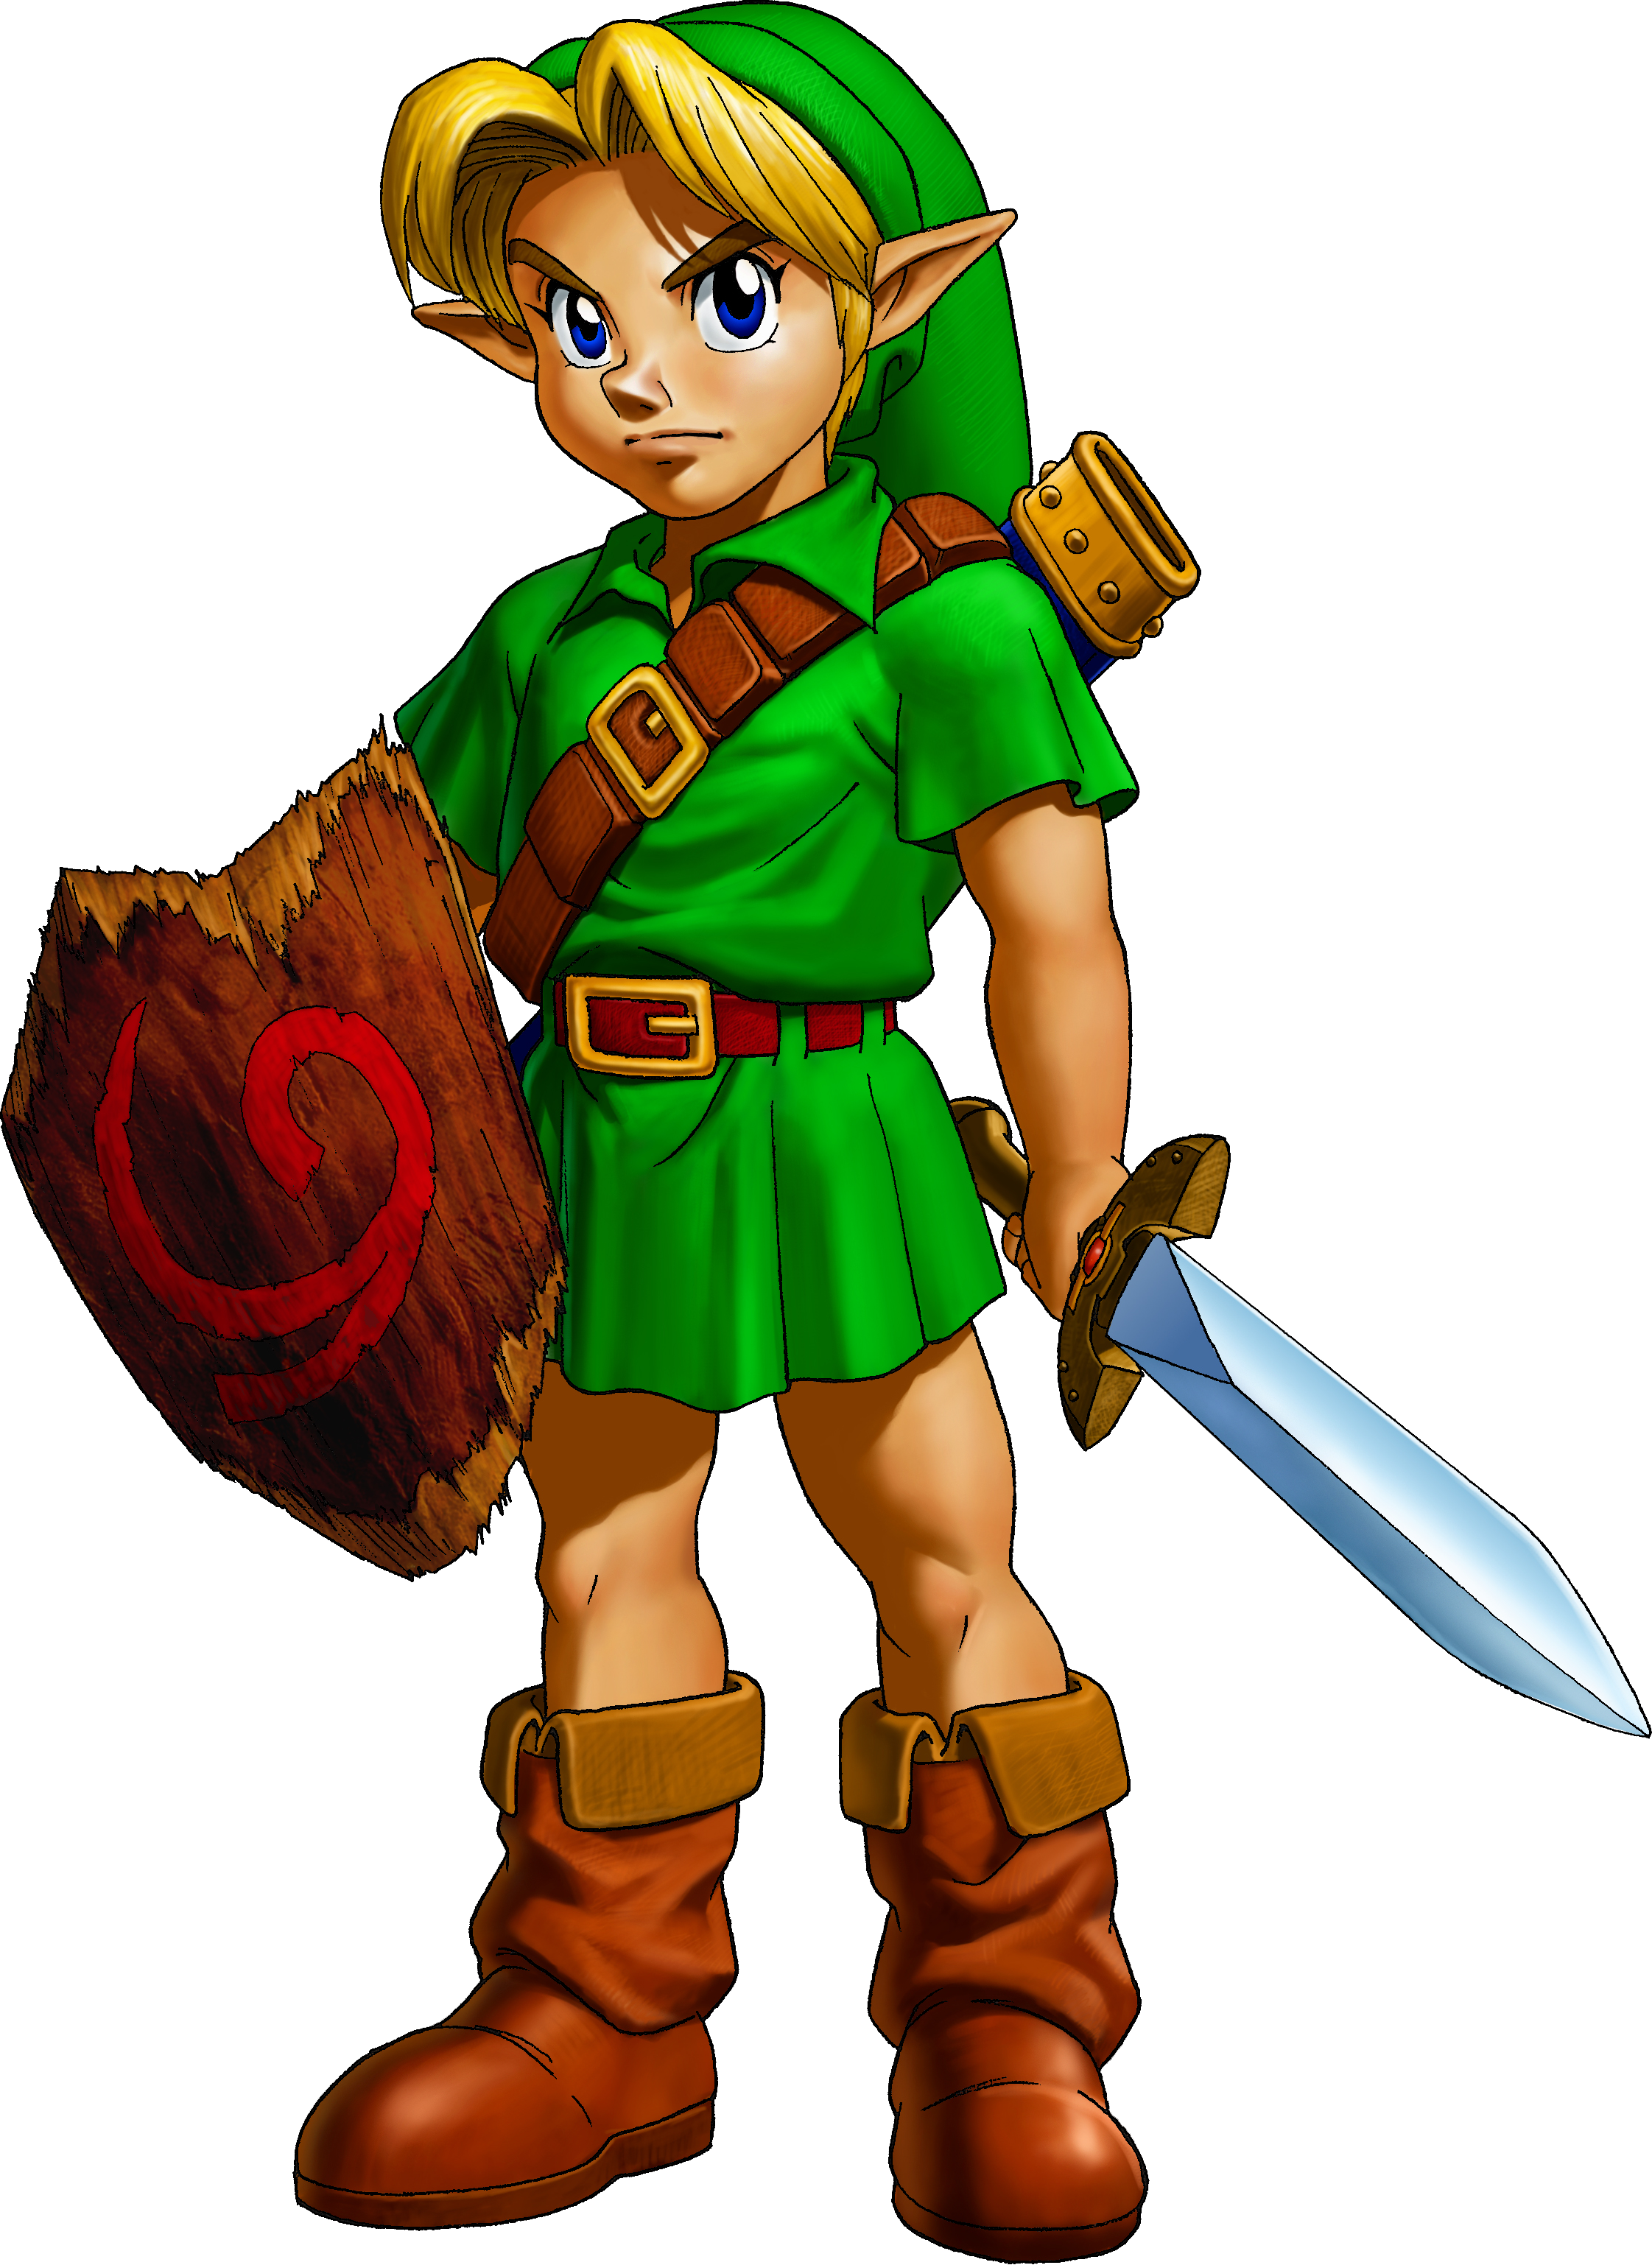 Link's Fairy Companion | Zeldapedia | Fandom powered by Wikia